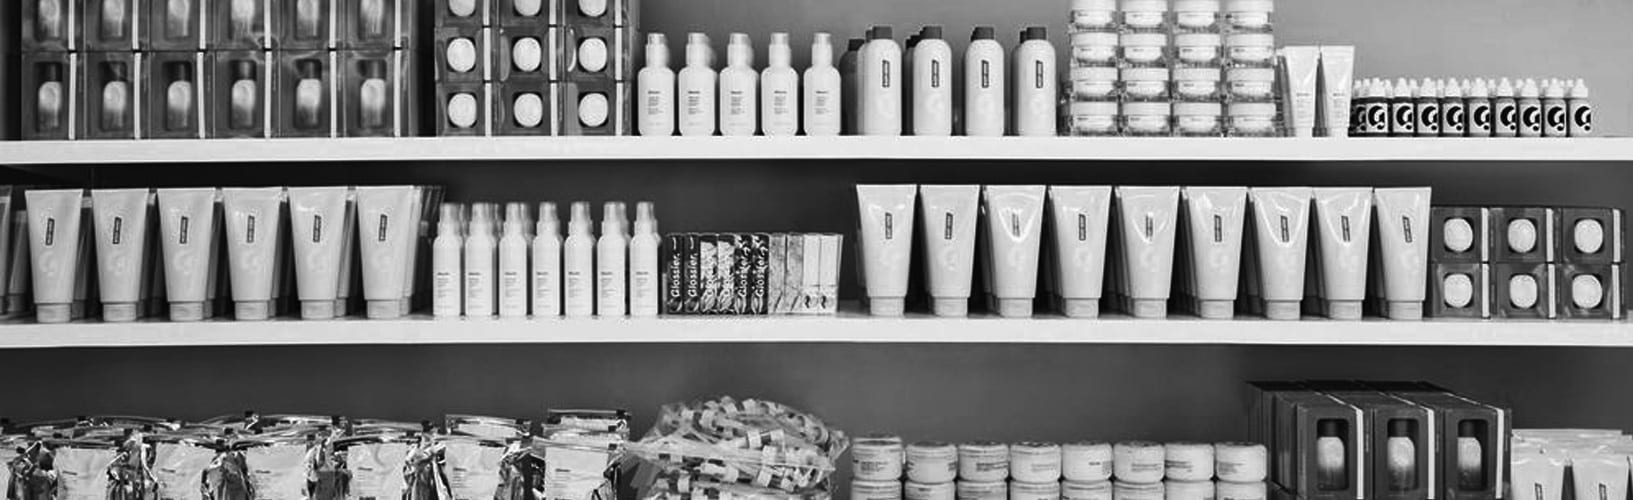 glossier products on shelf